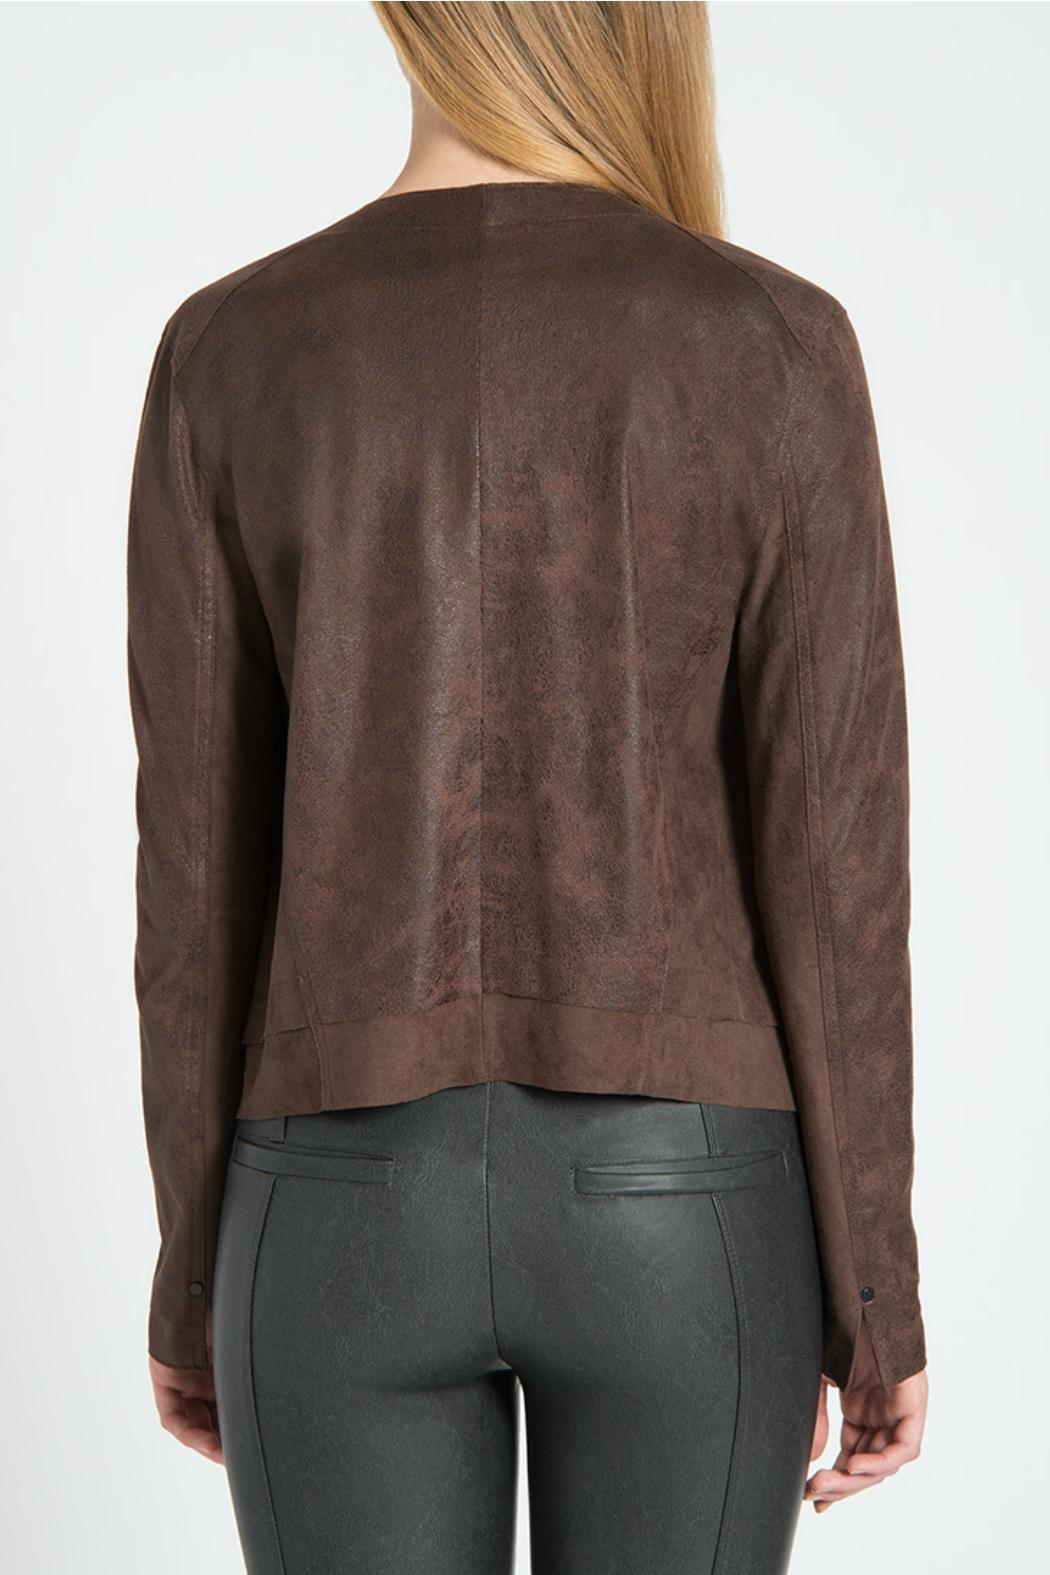 Lyssé Austin Open Jacket - Side Cropped Image